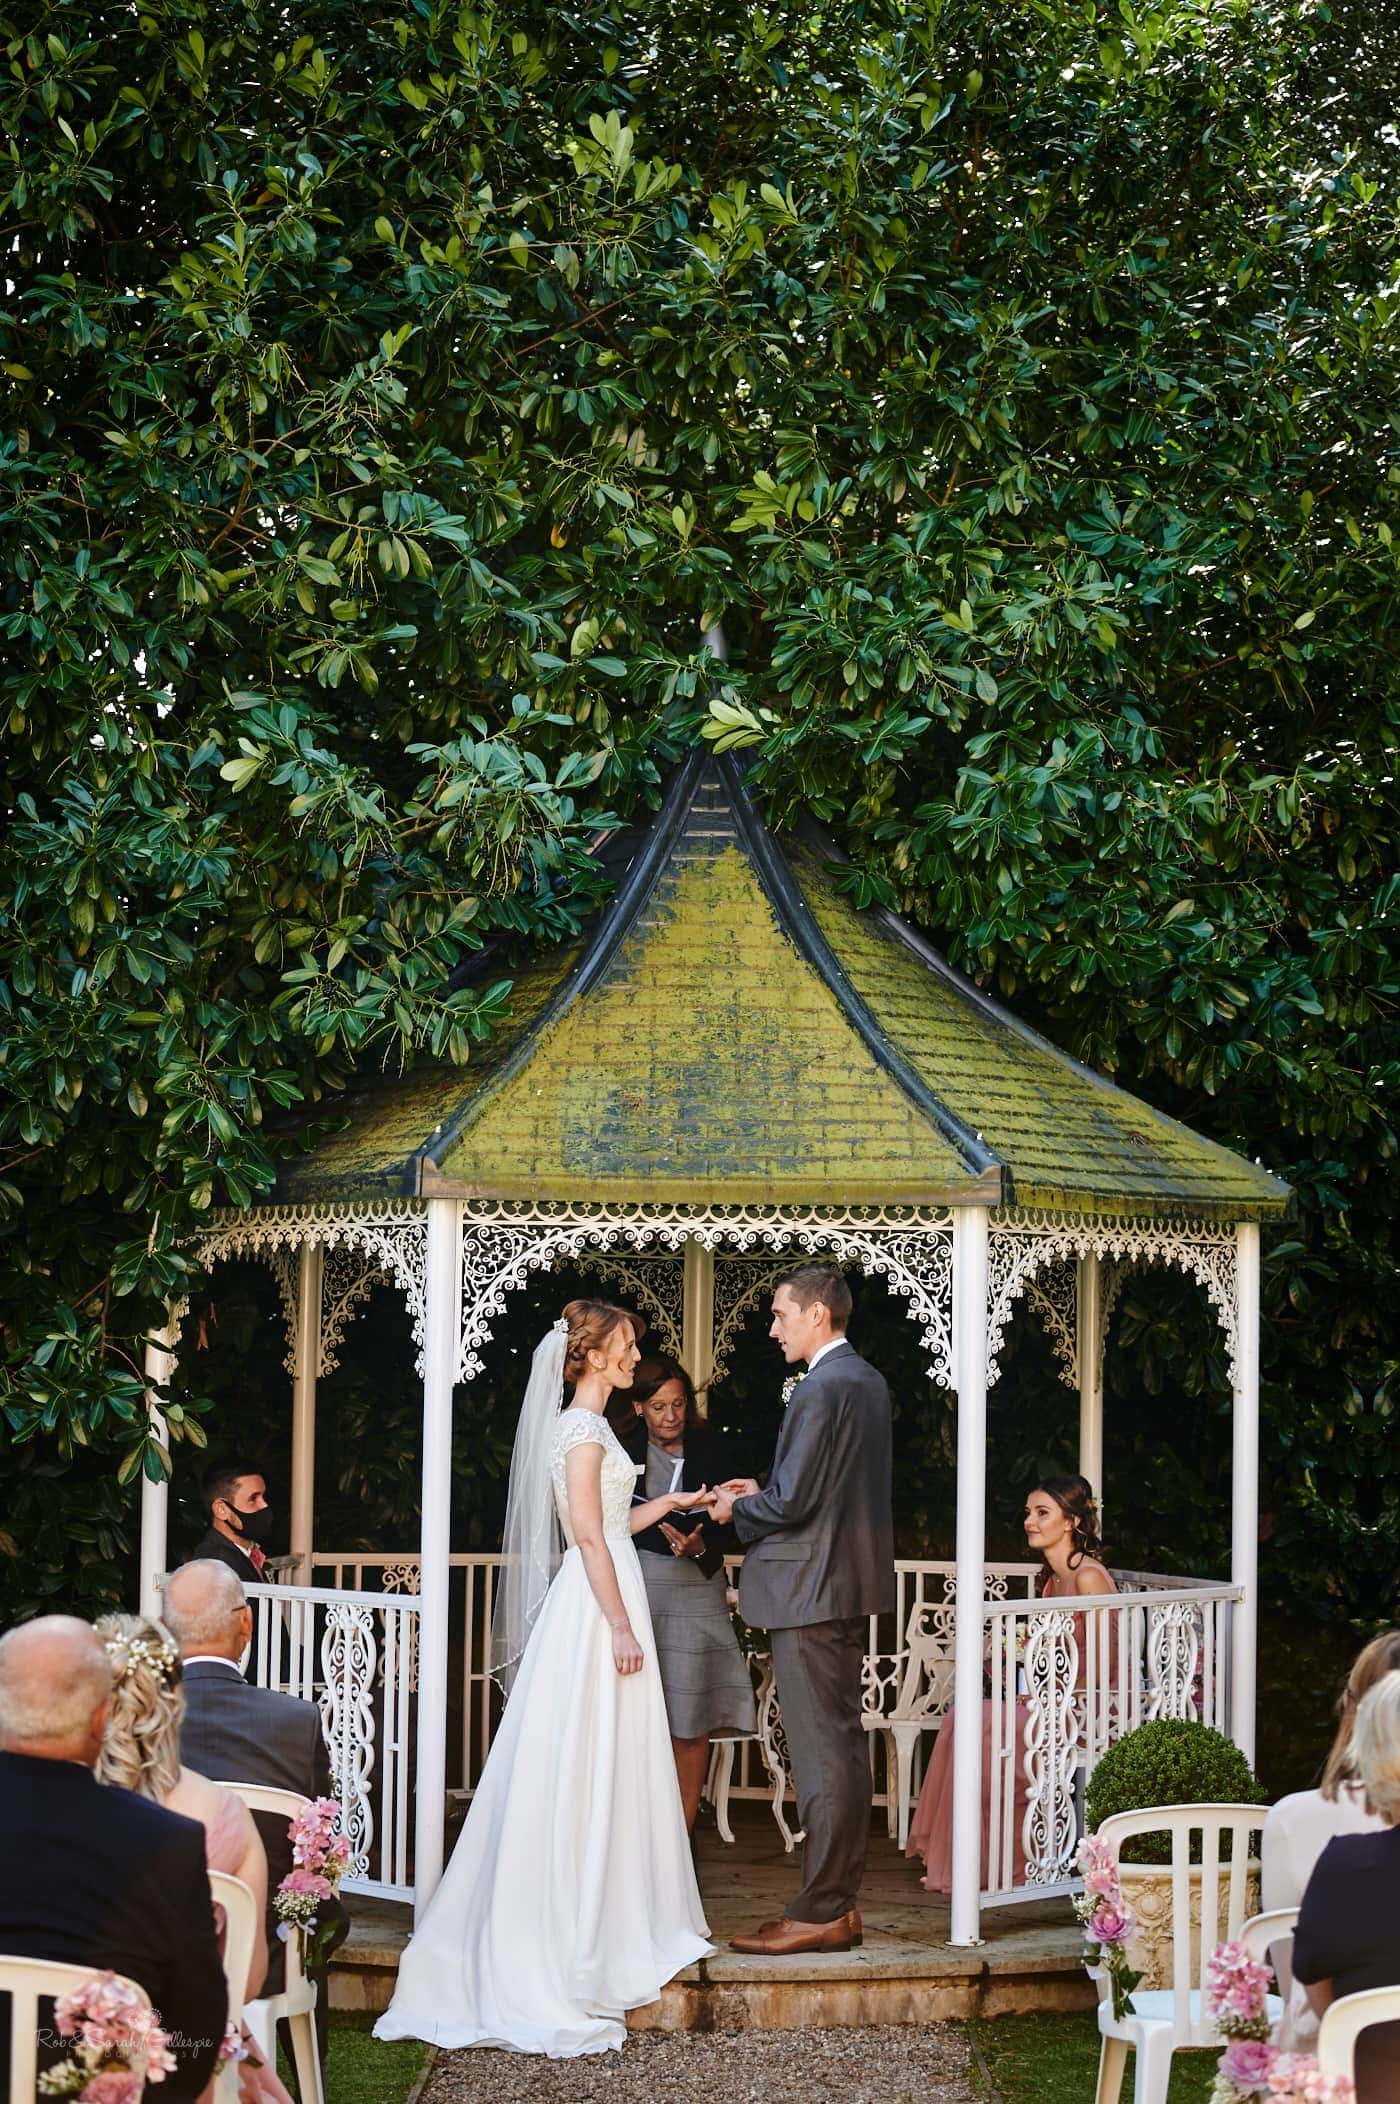 Bride and groom exchange wedding rings during outdoor ceremony at Pendrell Hall